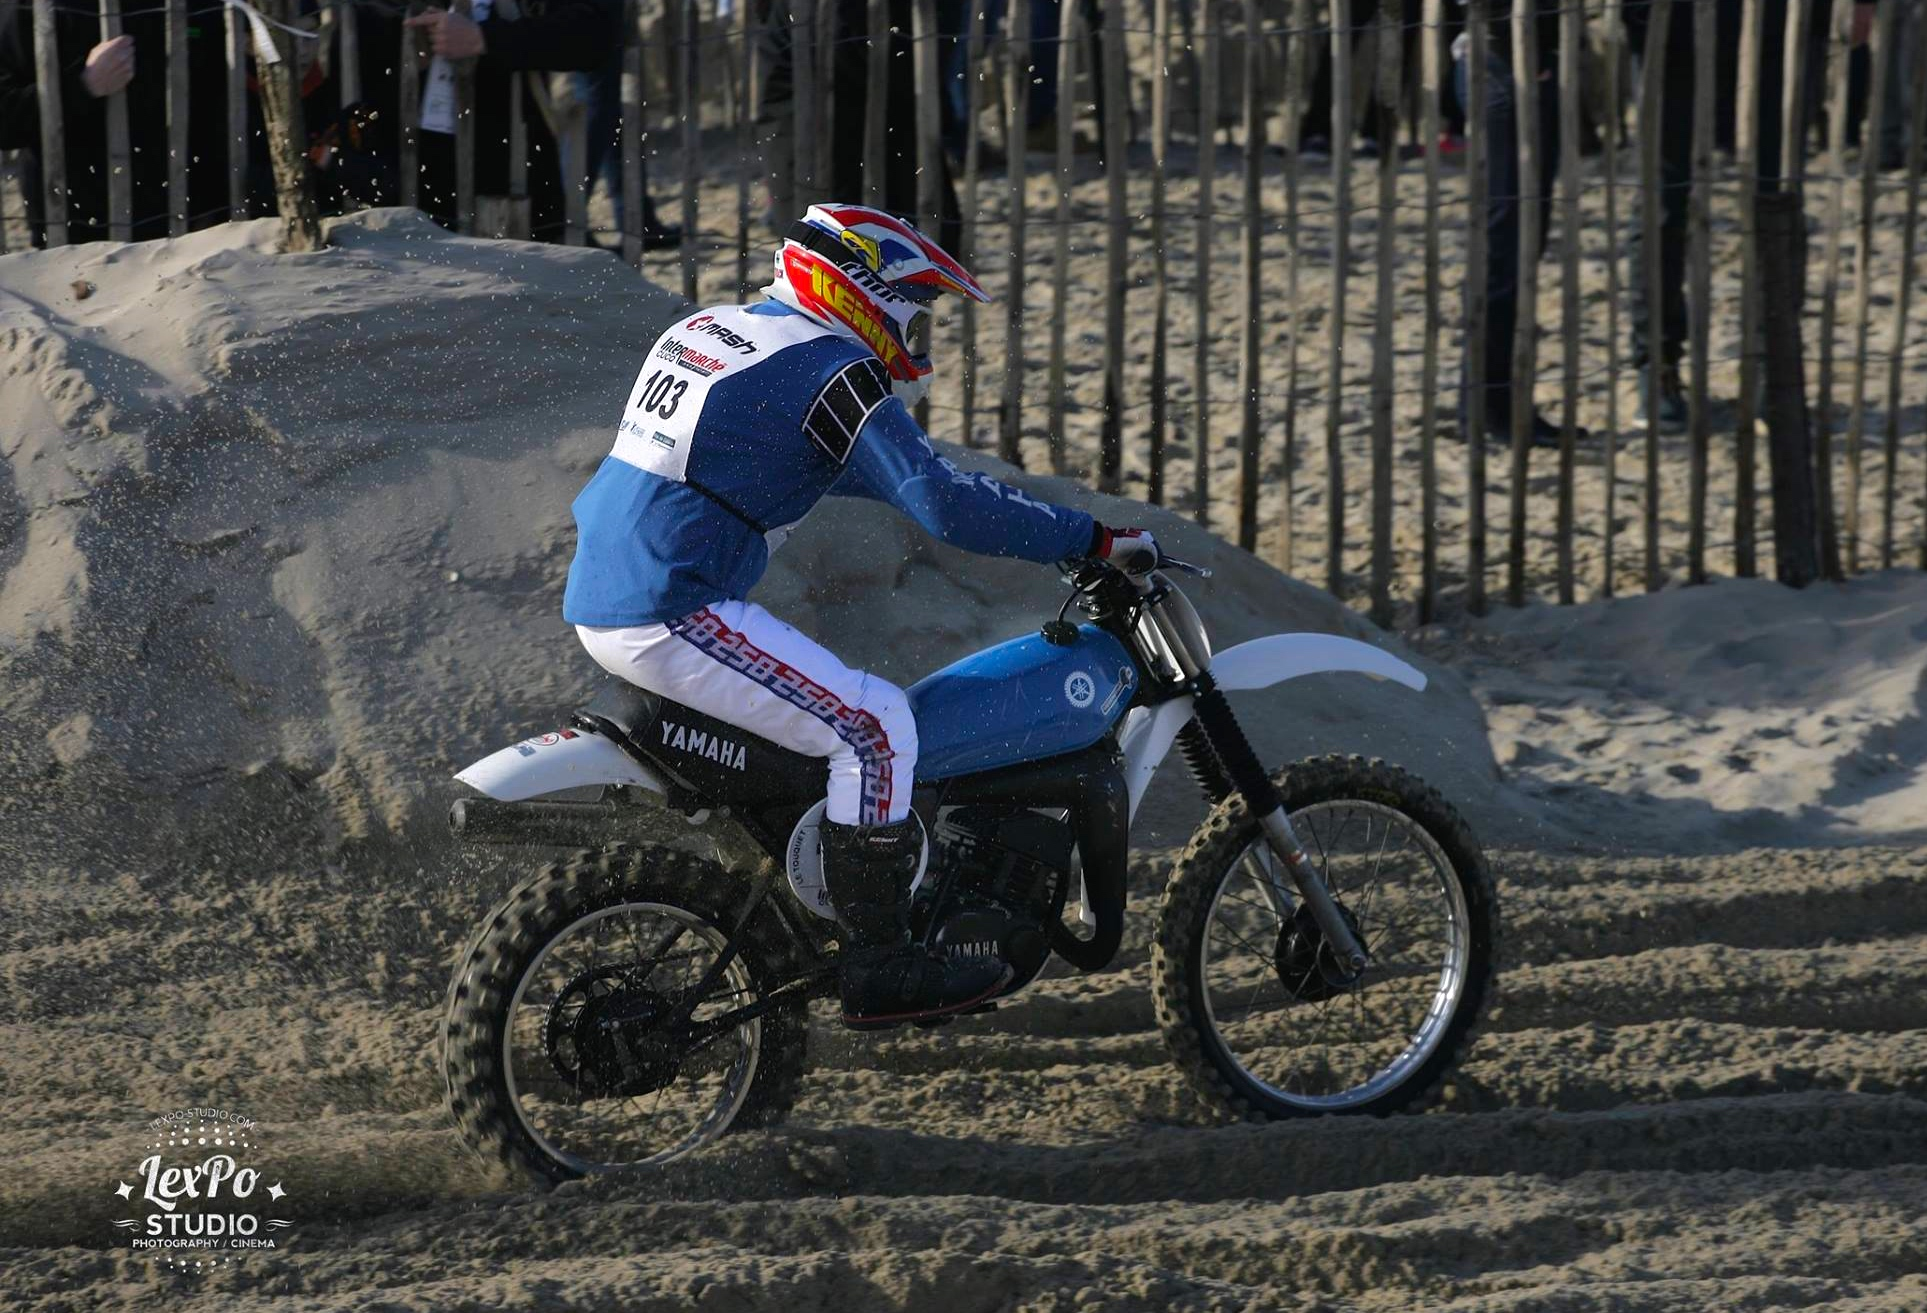 ADRIEN LOHYN, racing at the Enduropale du Touquet in France